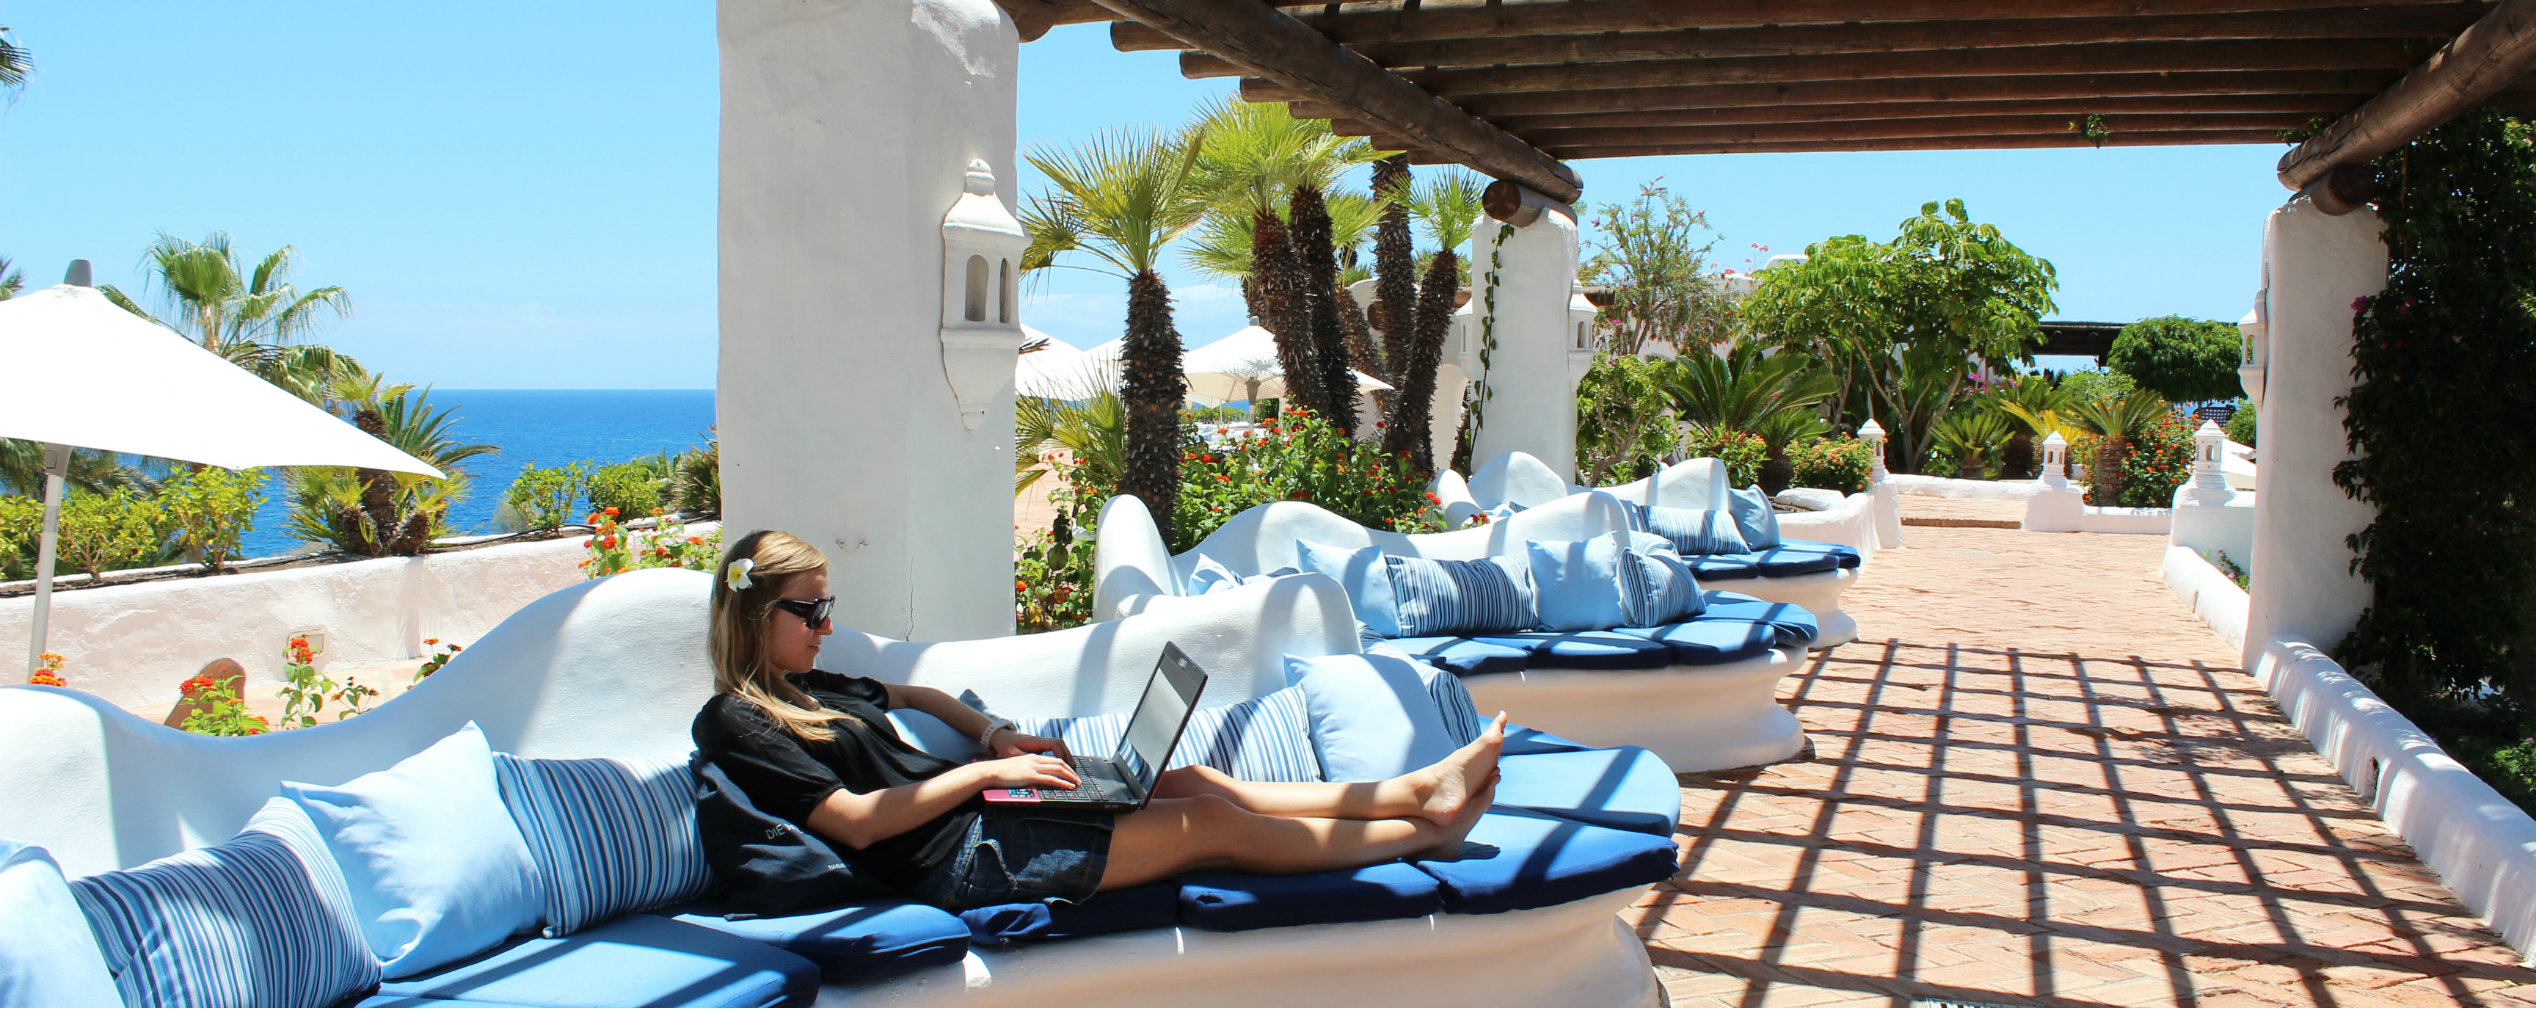 Jardin tropical experience the tui blue paradise on tenerife for Jardin tropical